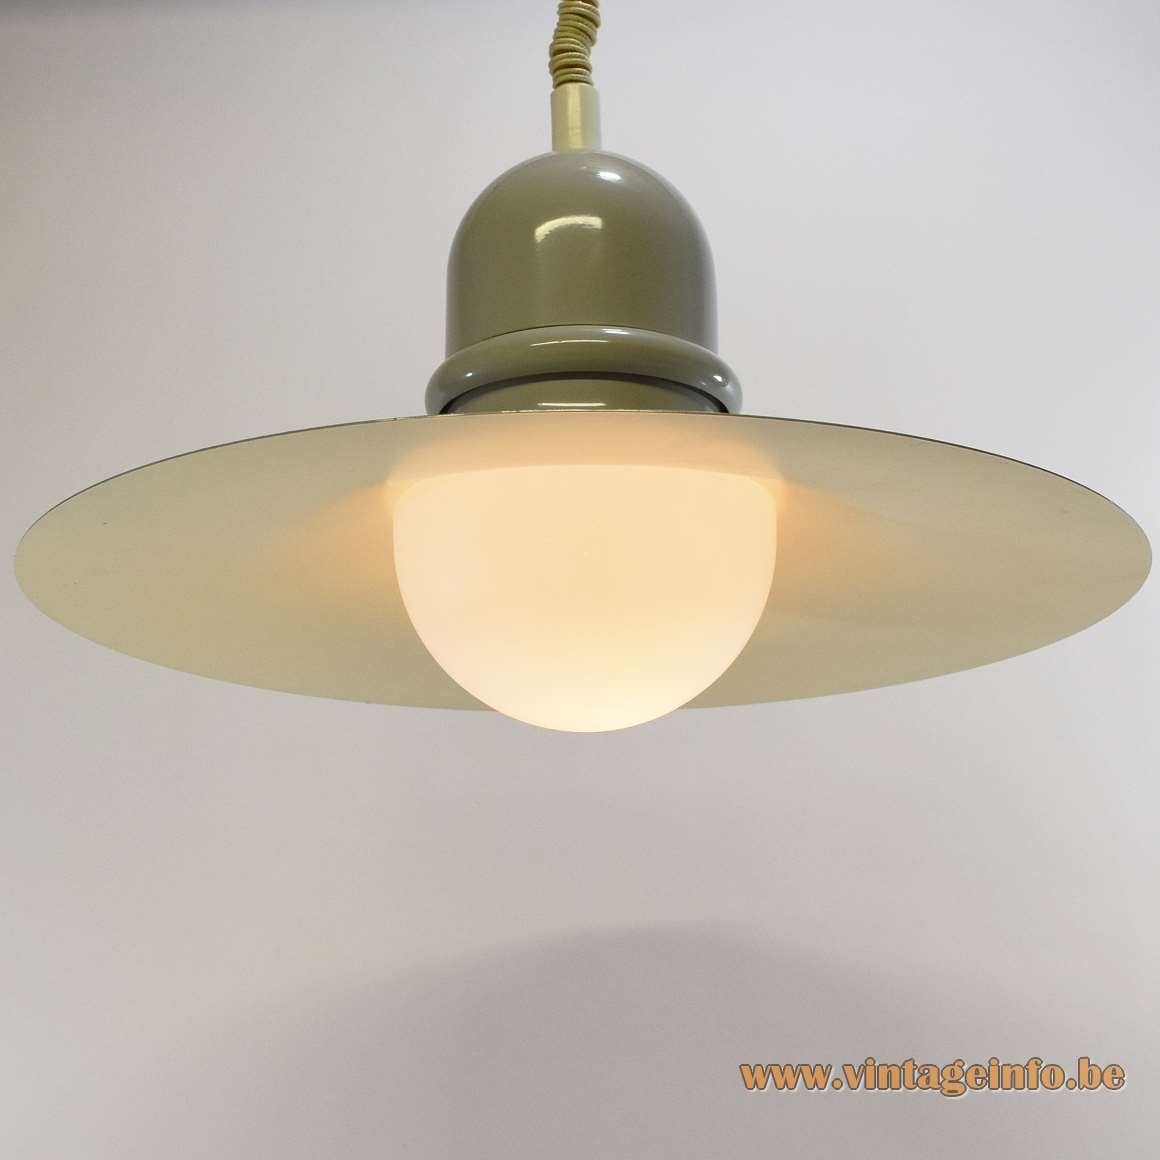 Herda rise & fall metal pendant lamp round witch hat lampshade opal glass diffuser 1960s 1970s MCM